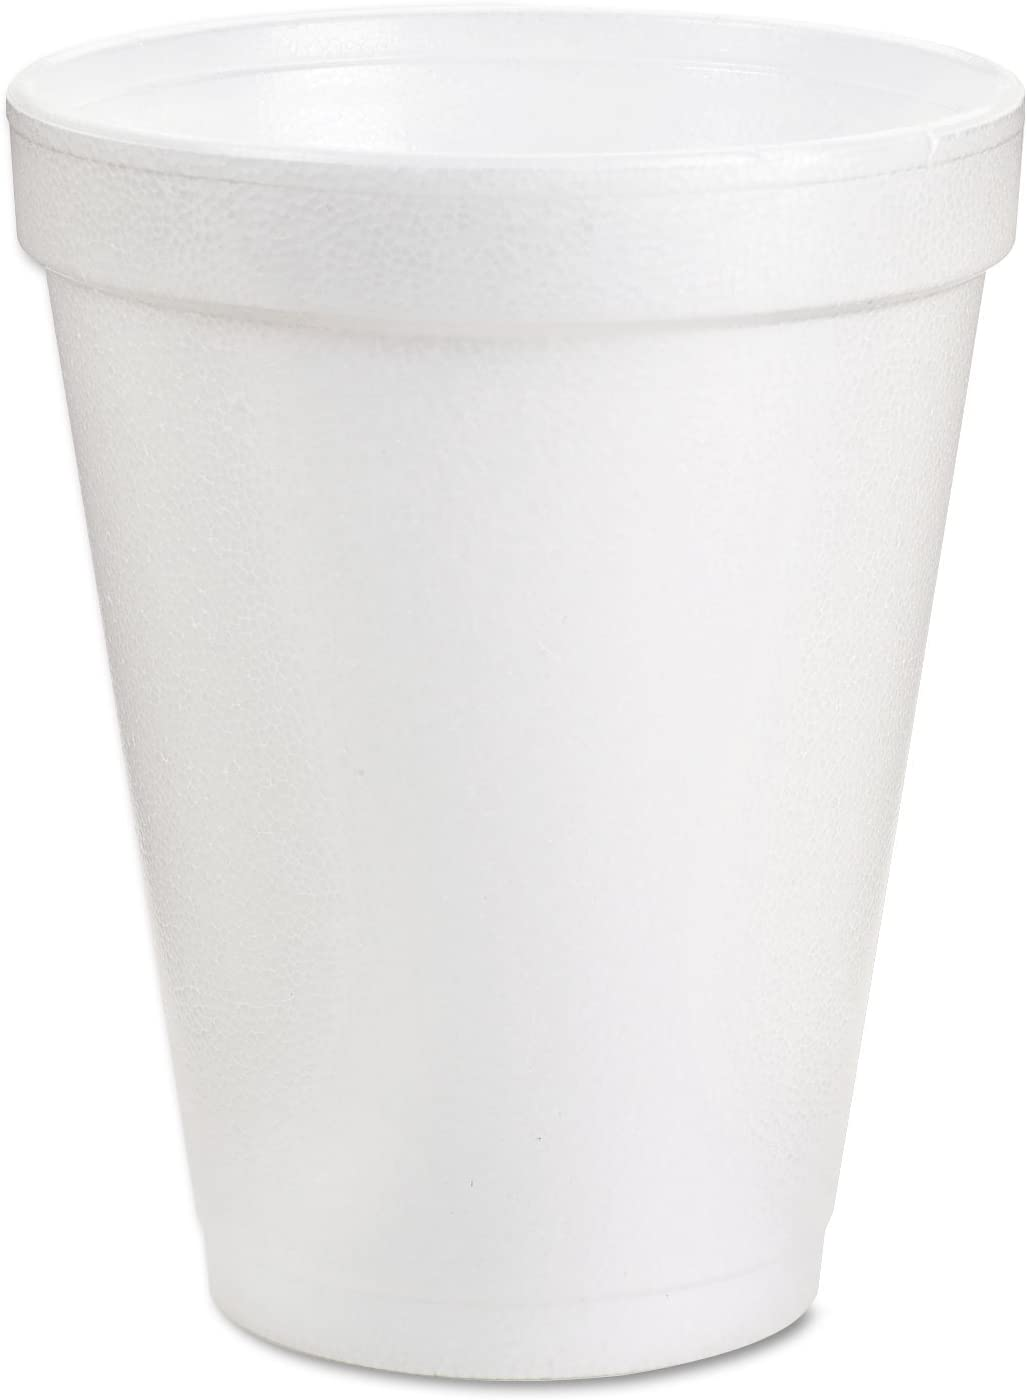 quality assurance DART hot or cold insulated space piece saver 6 Seattle Mall 1000 Ounce cups